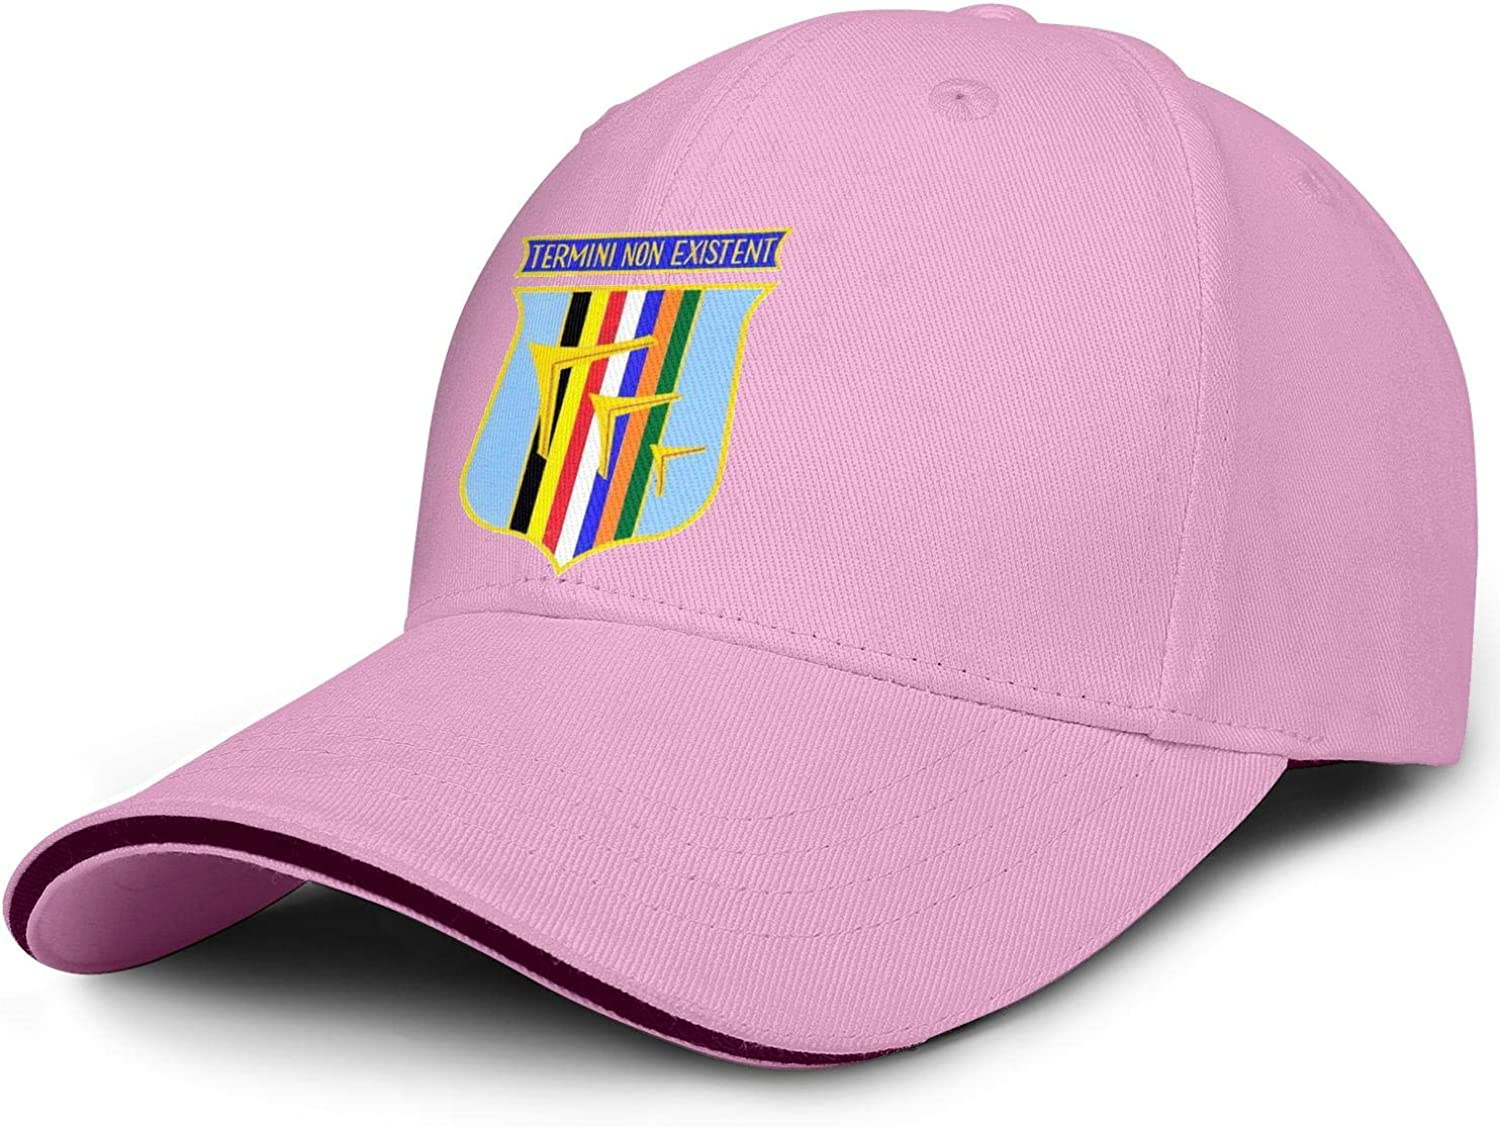 SWNCNC Unisex 60th-Troop-Carrier-Wing-Emblem- Adjustable Hat Max 58% OFF SEAL limited product Cap